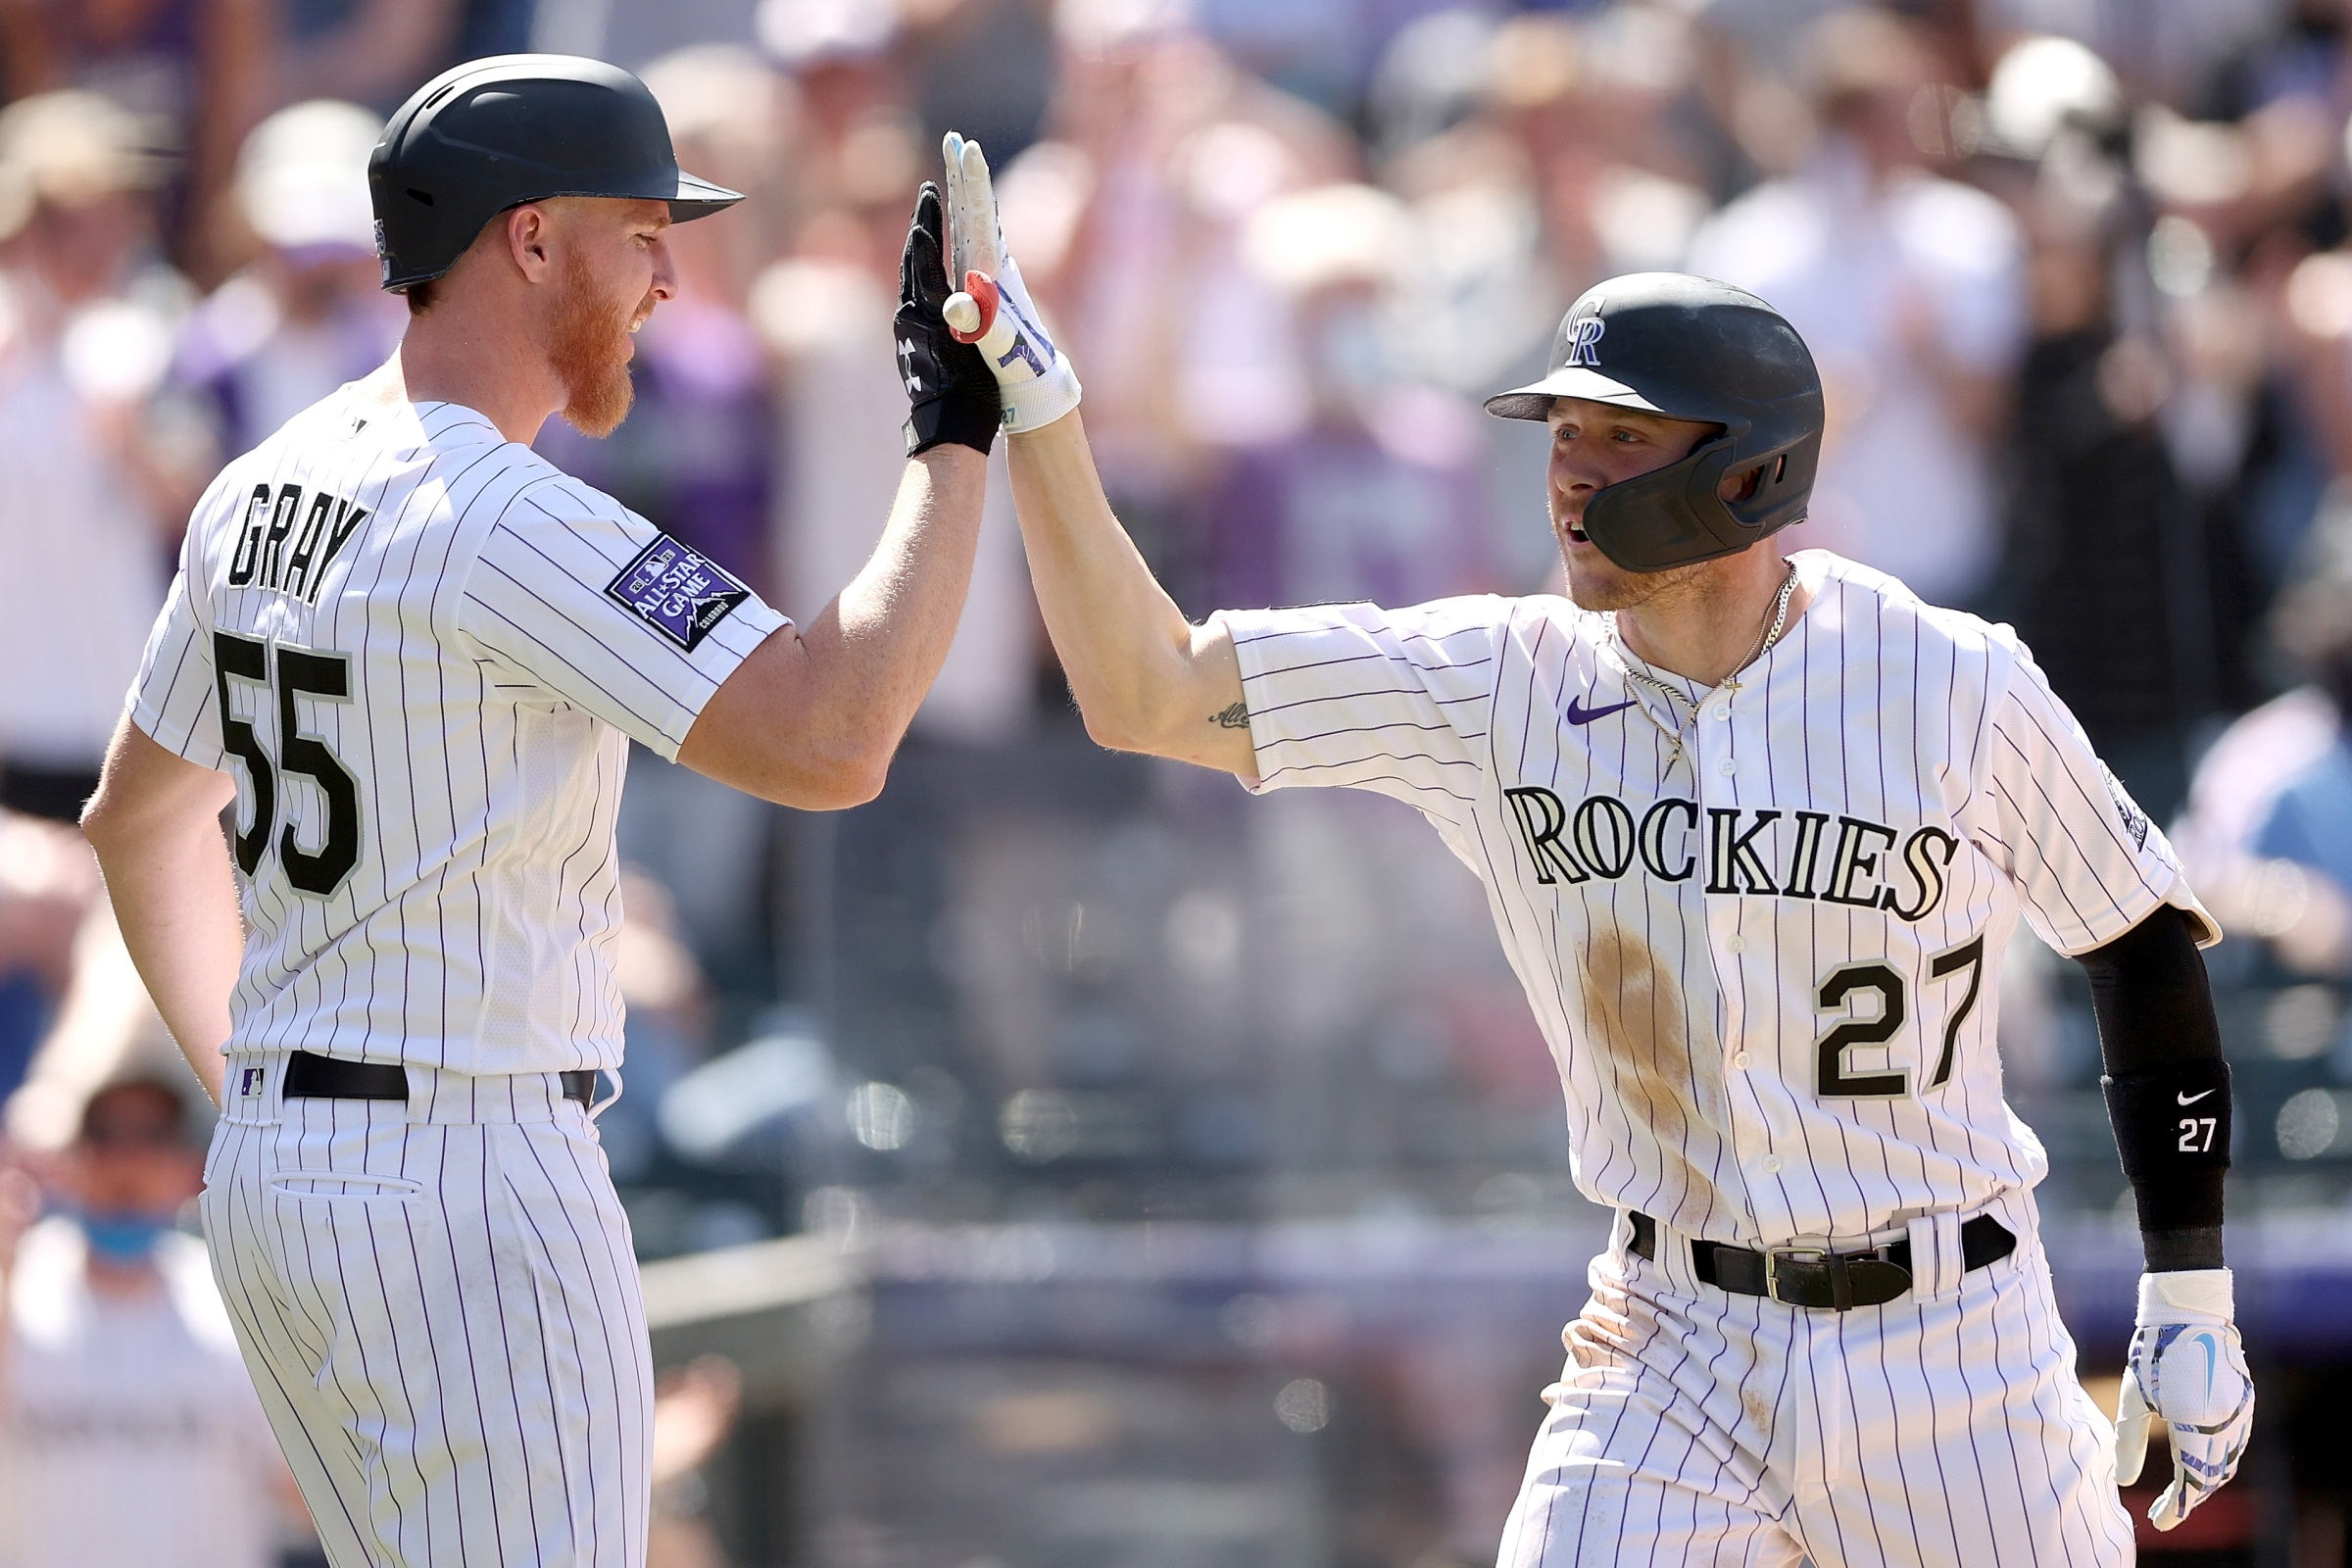 Rockies pitcher Jon Gray and Rockies shortstop Trevor Story high-five in a game against the Phillies